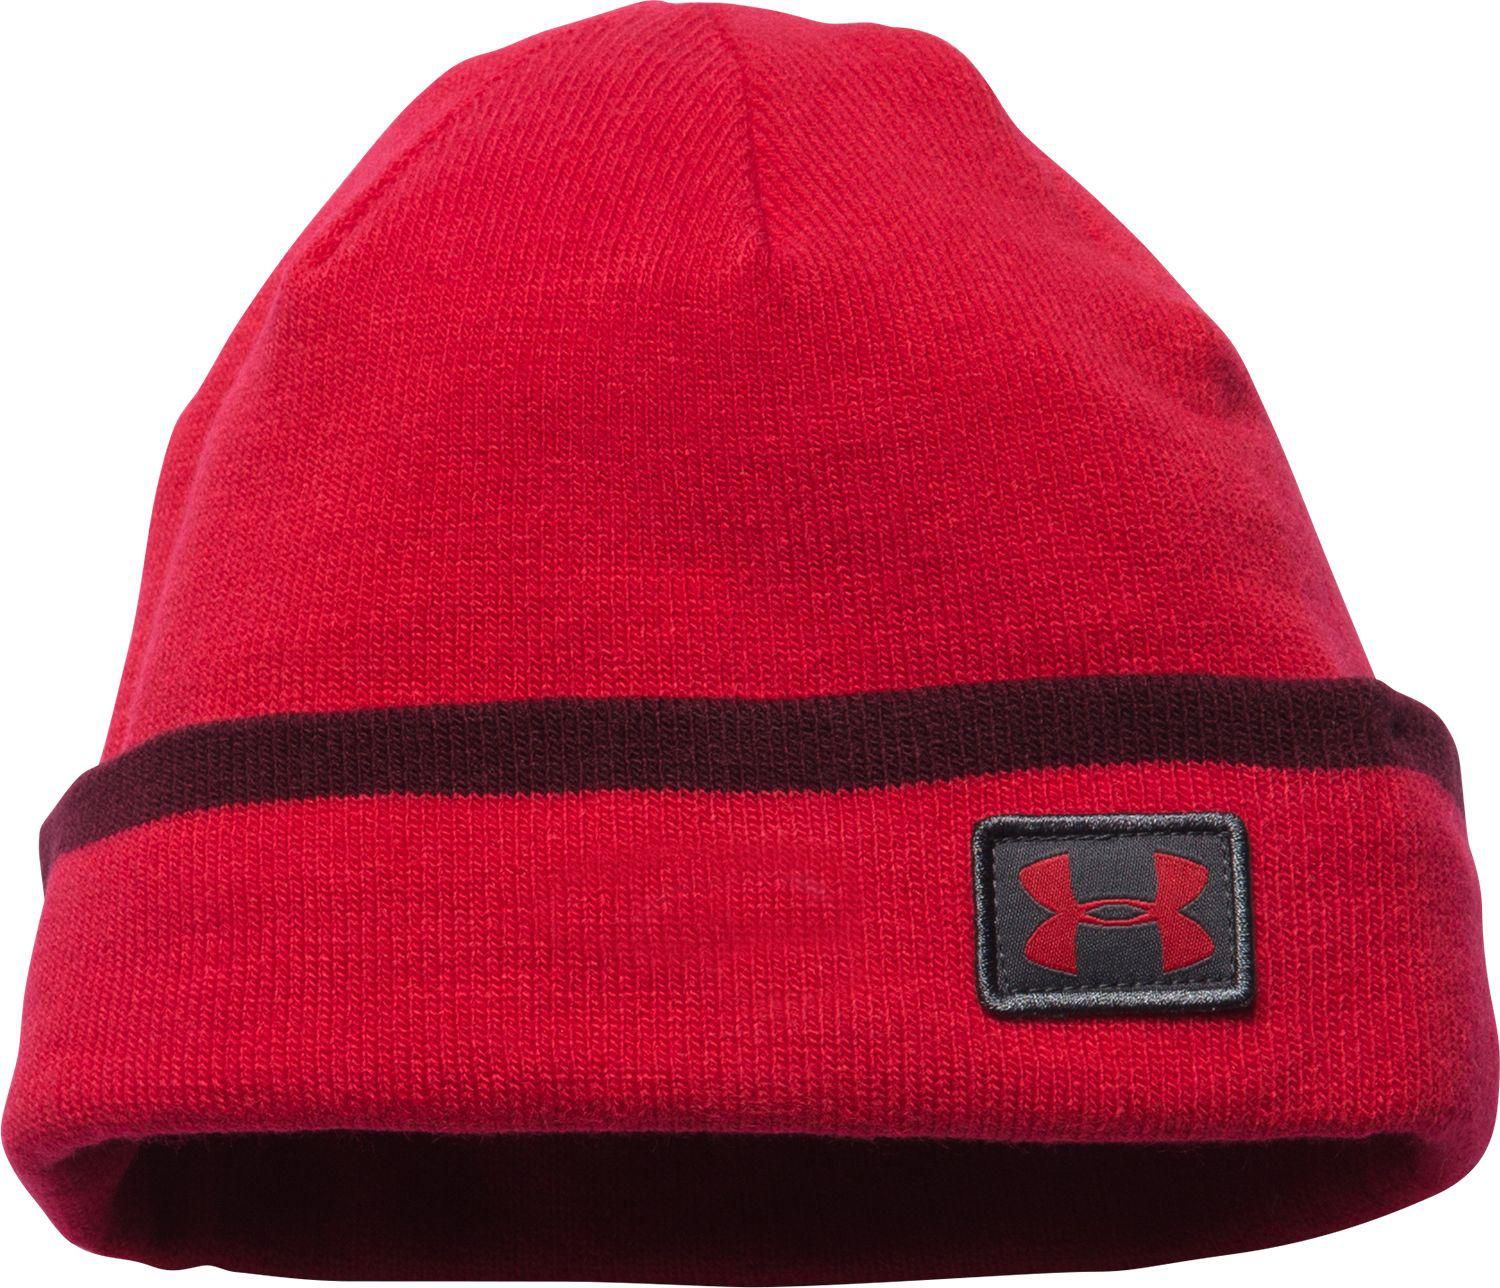 Lyst - Under Armour Cuff Sideline Beanie in Red for Men 246eba1326a5